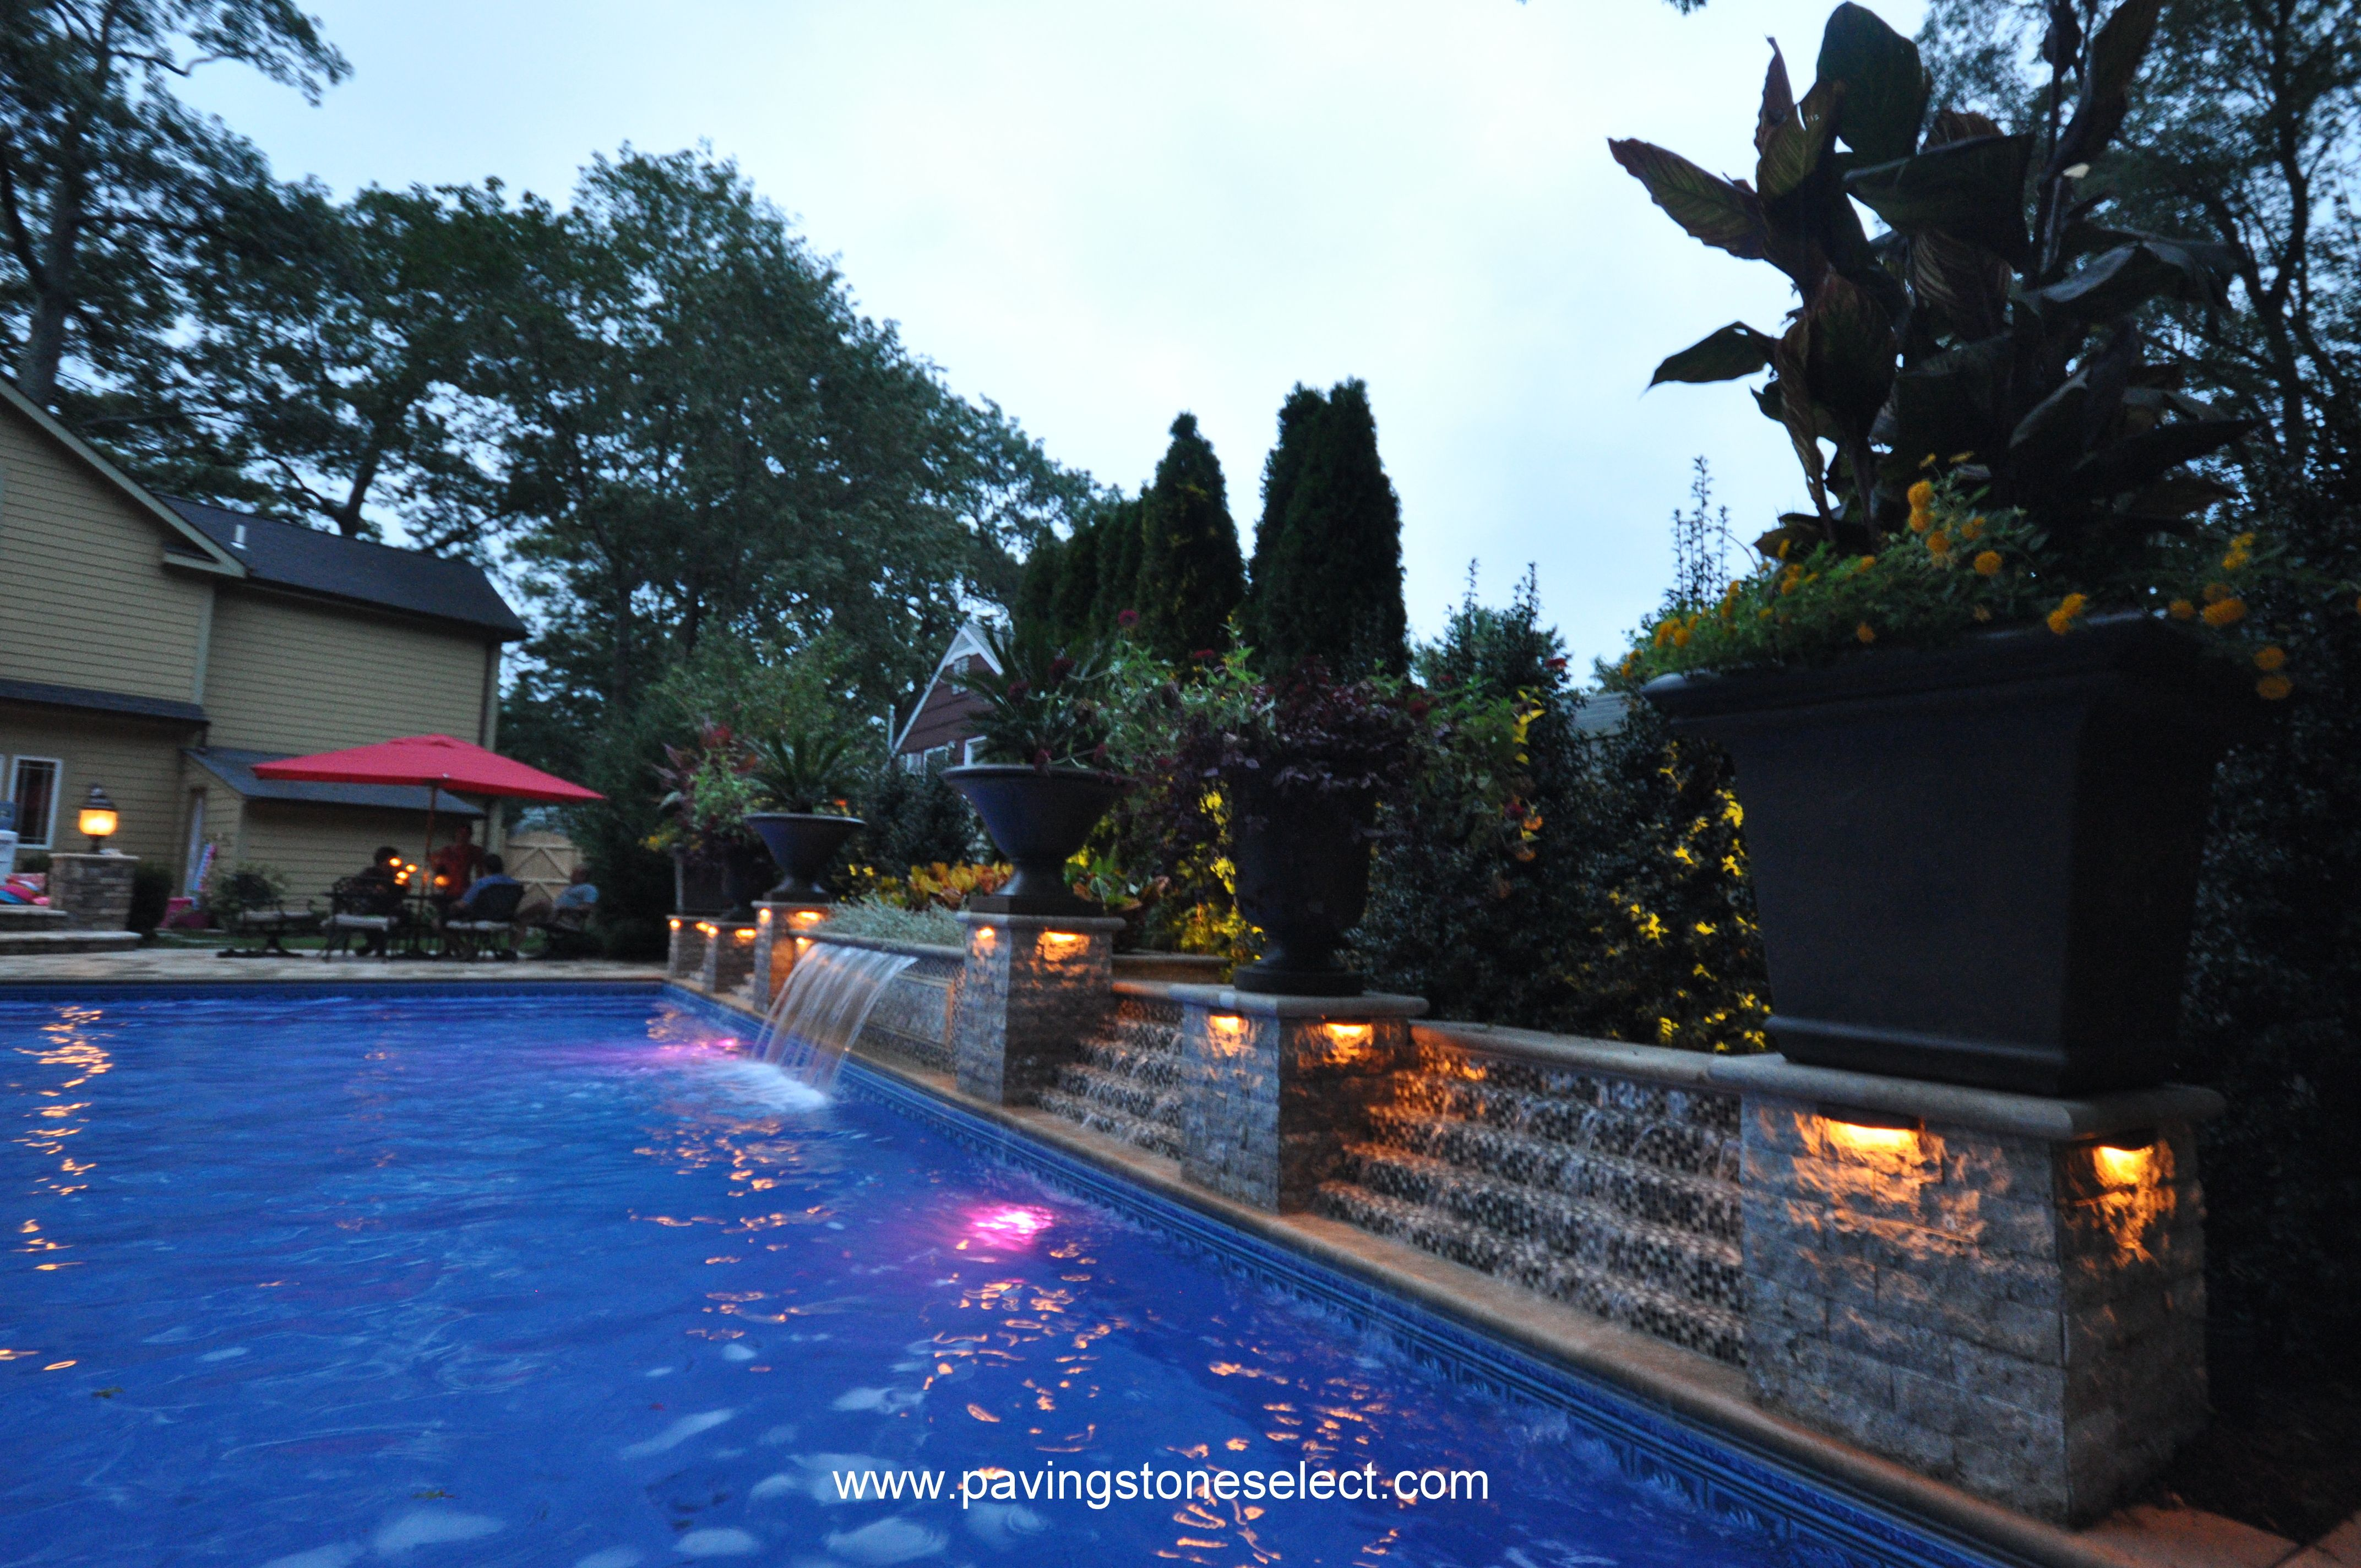 In this patio we see a beautiful backyard scene with ...